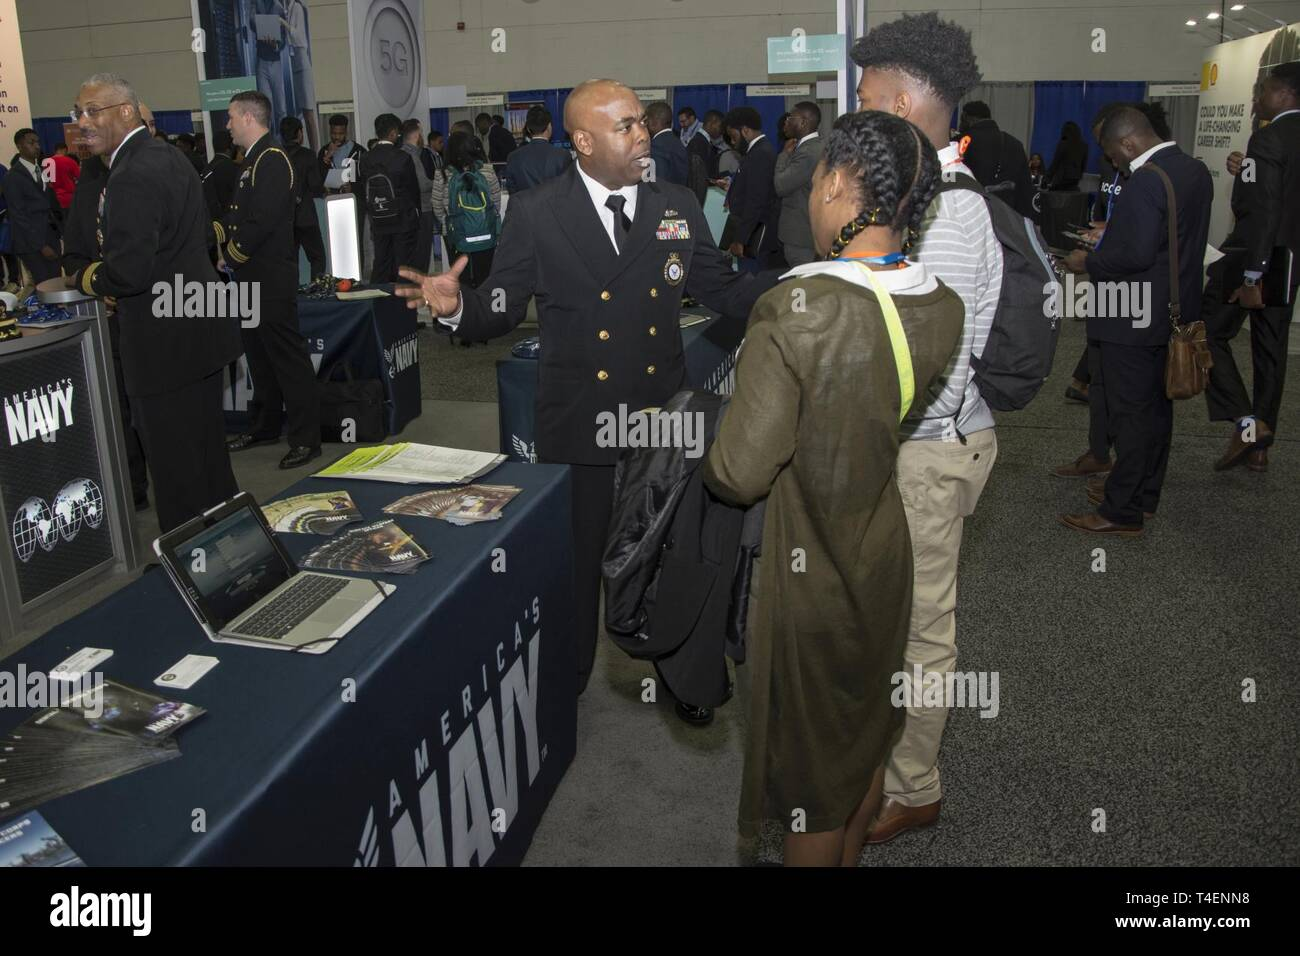 National Society Of Black Engineers Stock Photos & National